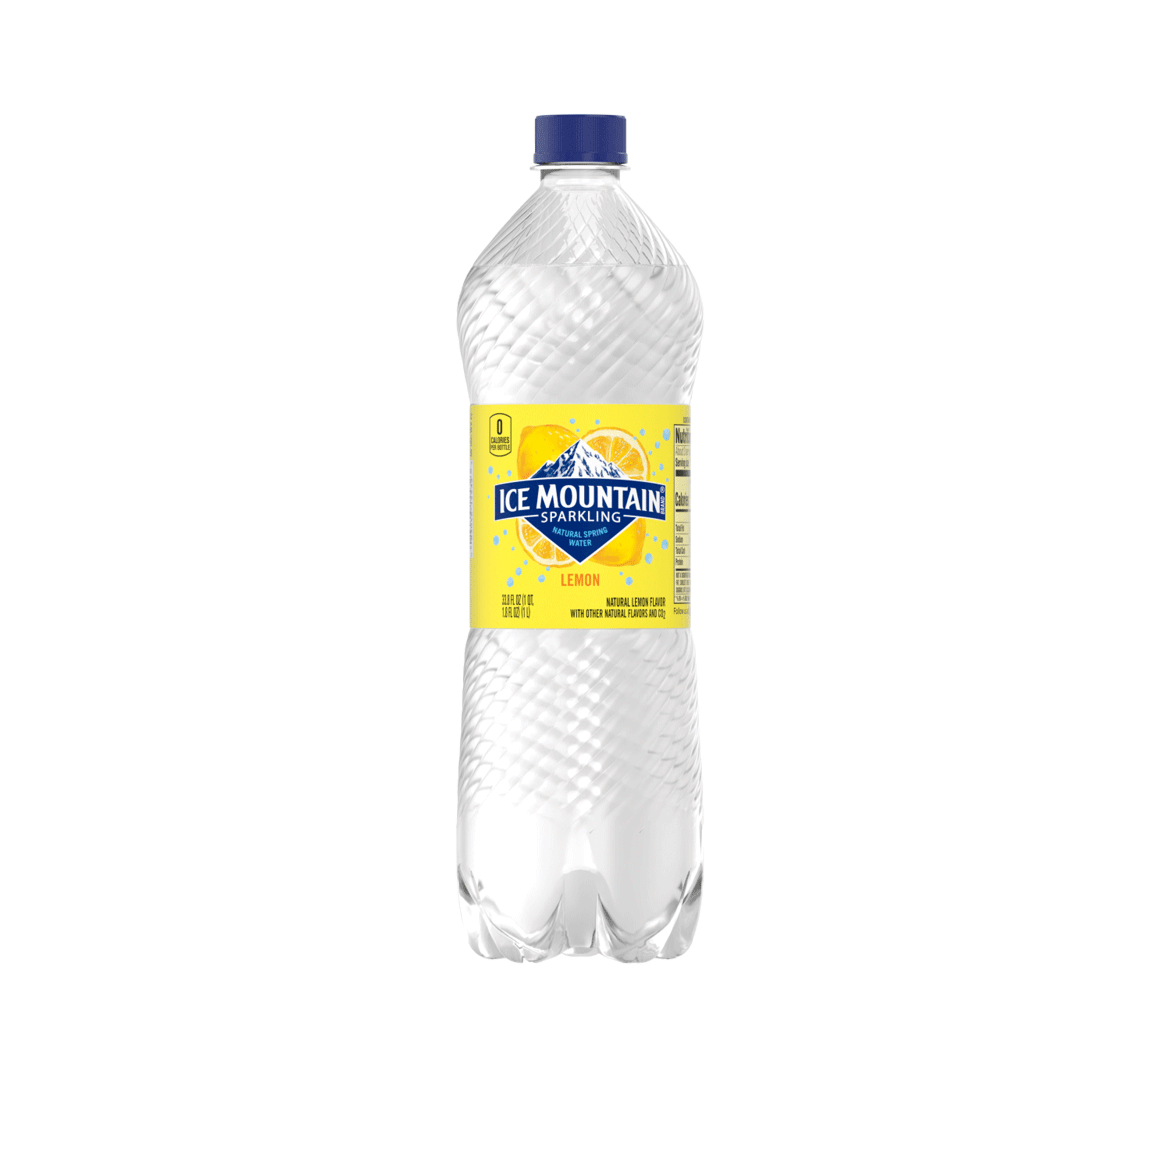 Ice Mountain® Brand Sparkling 100% Natural Spring Water - Lively Lemon Image2